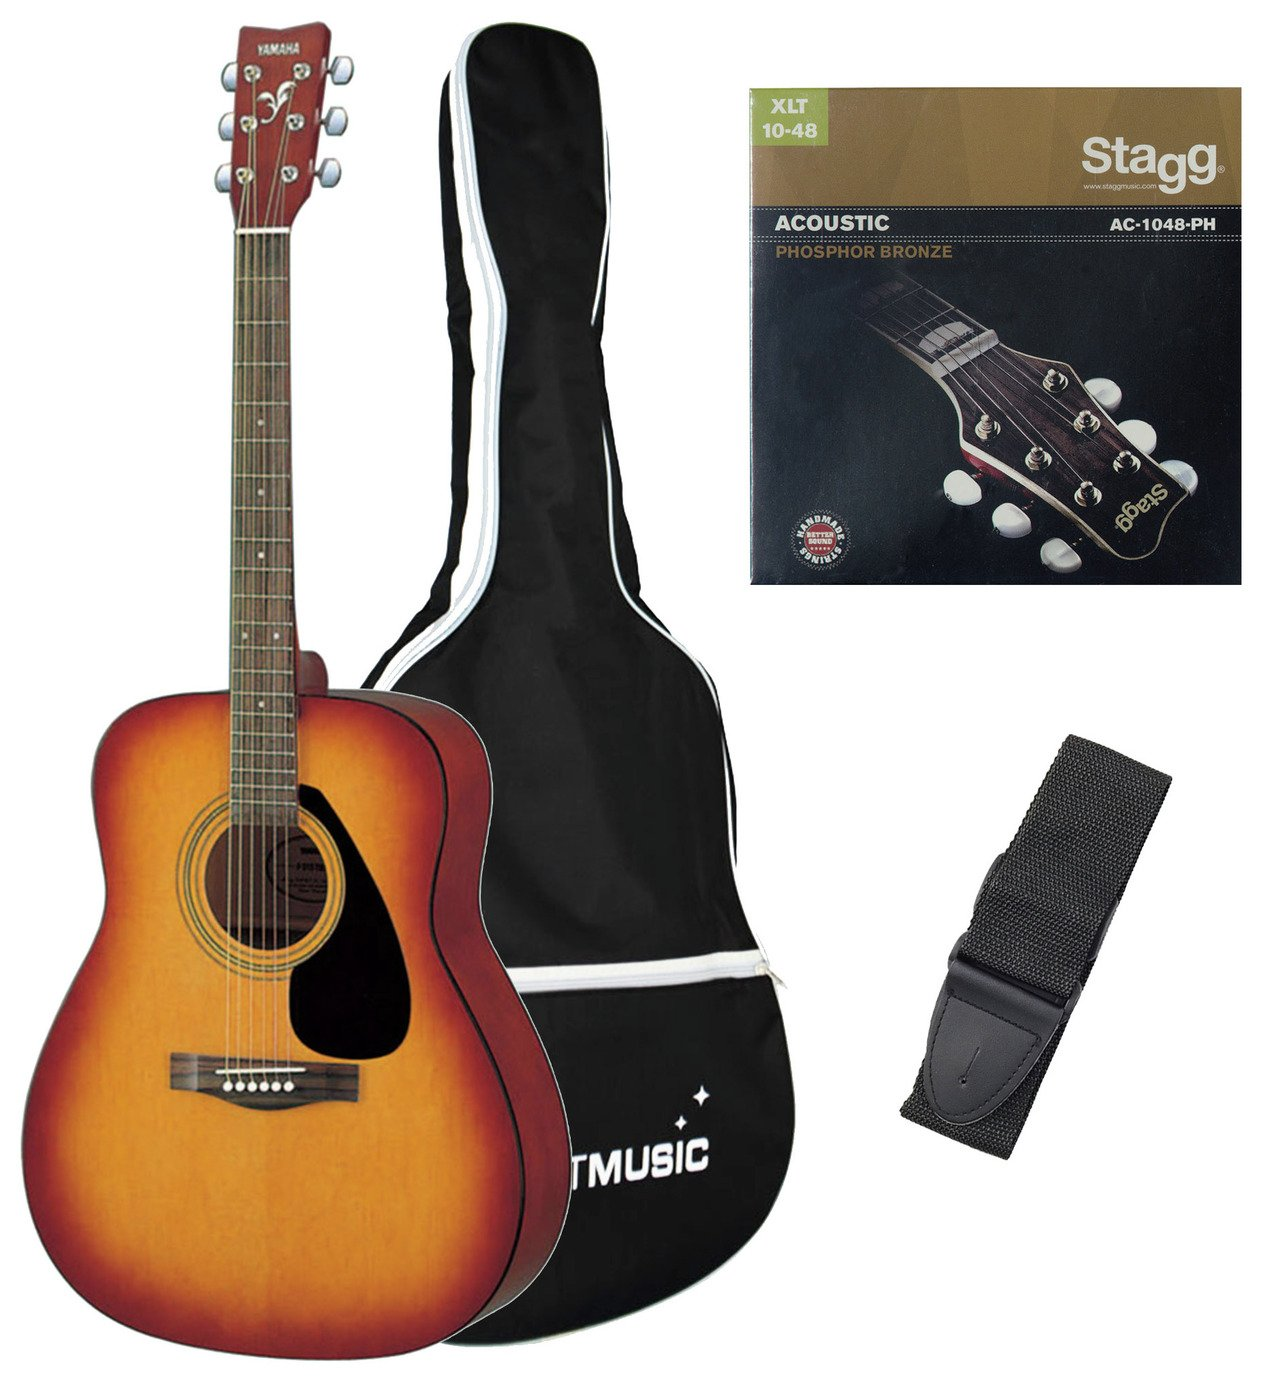 musical instruments page 1 argos price tracker. Black Bedroom Furniture Sets. Home Design Ideas